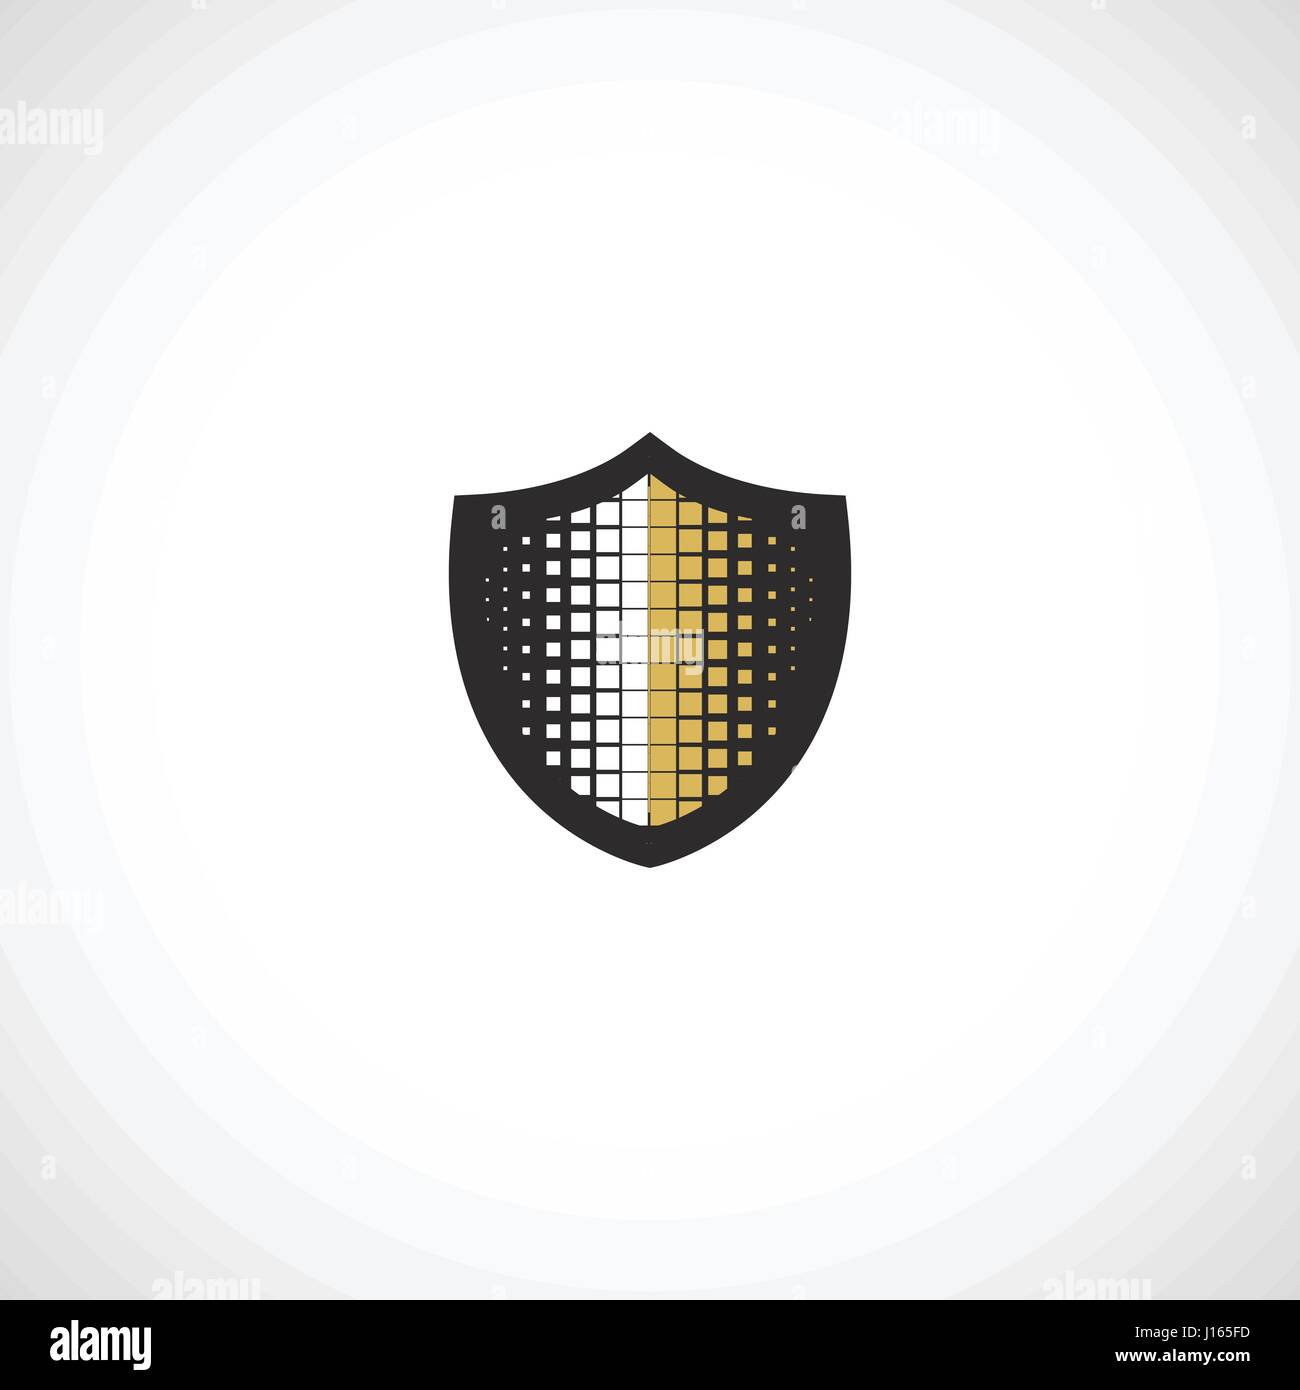 100 viking shield template pictures of a shield free download